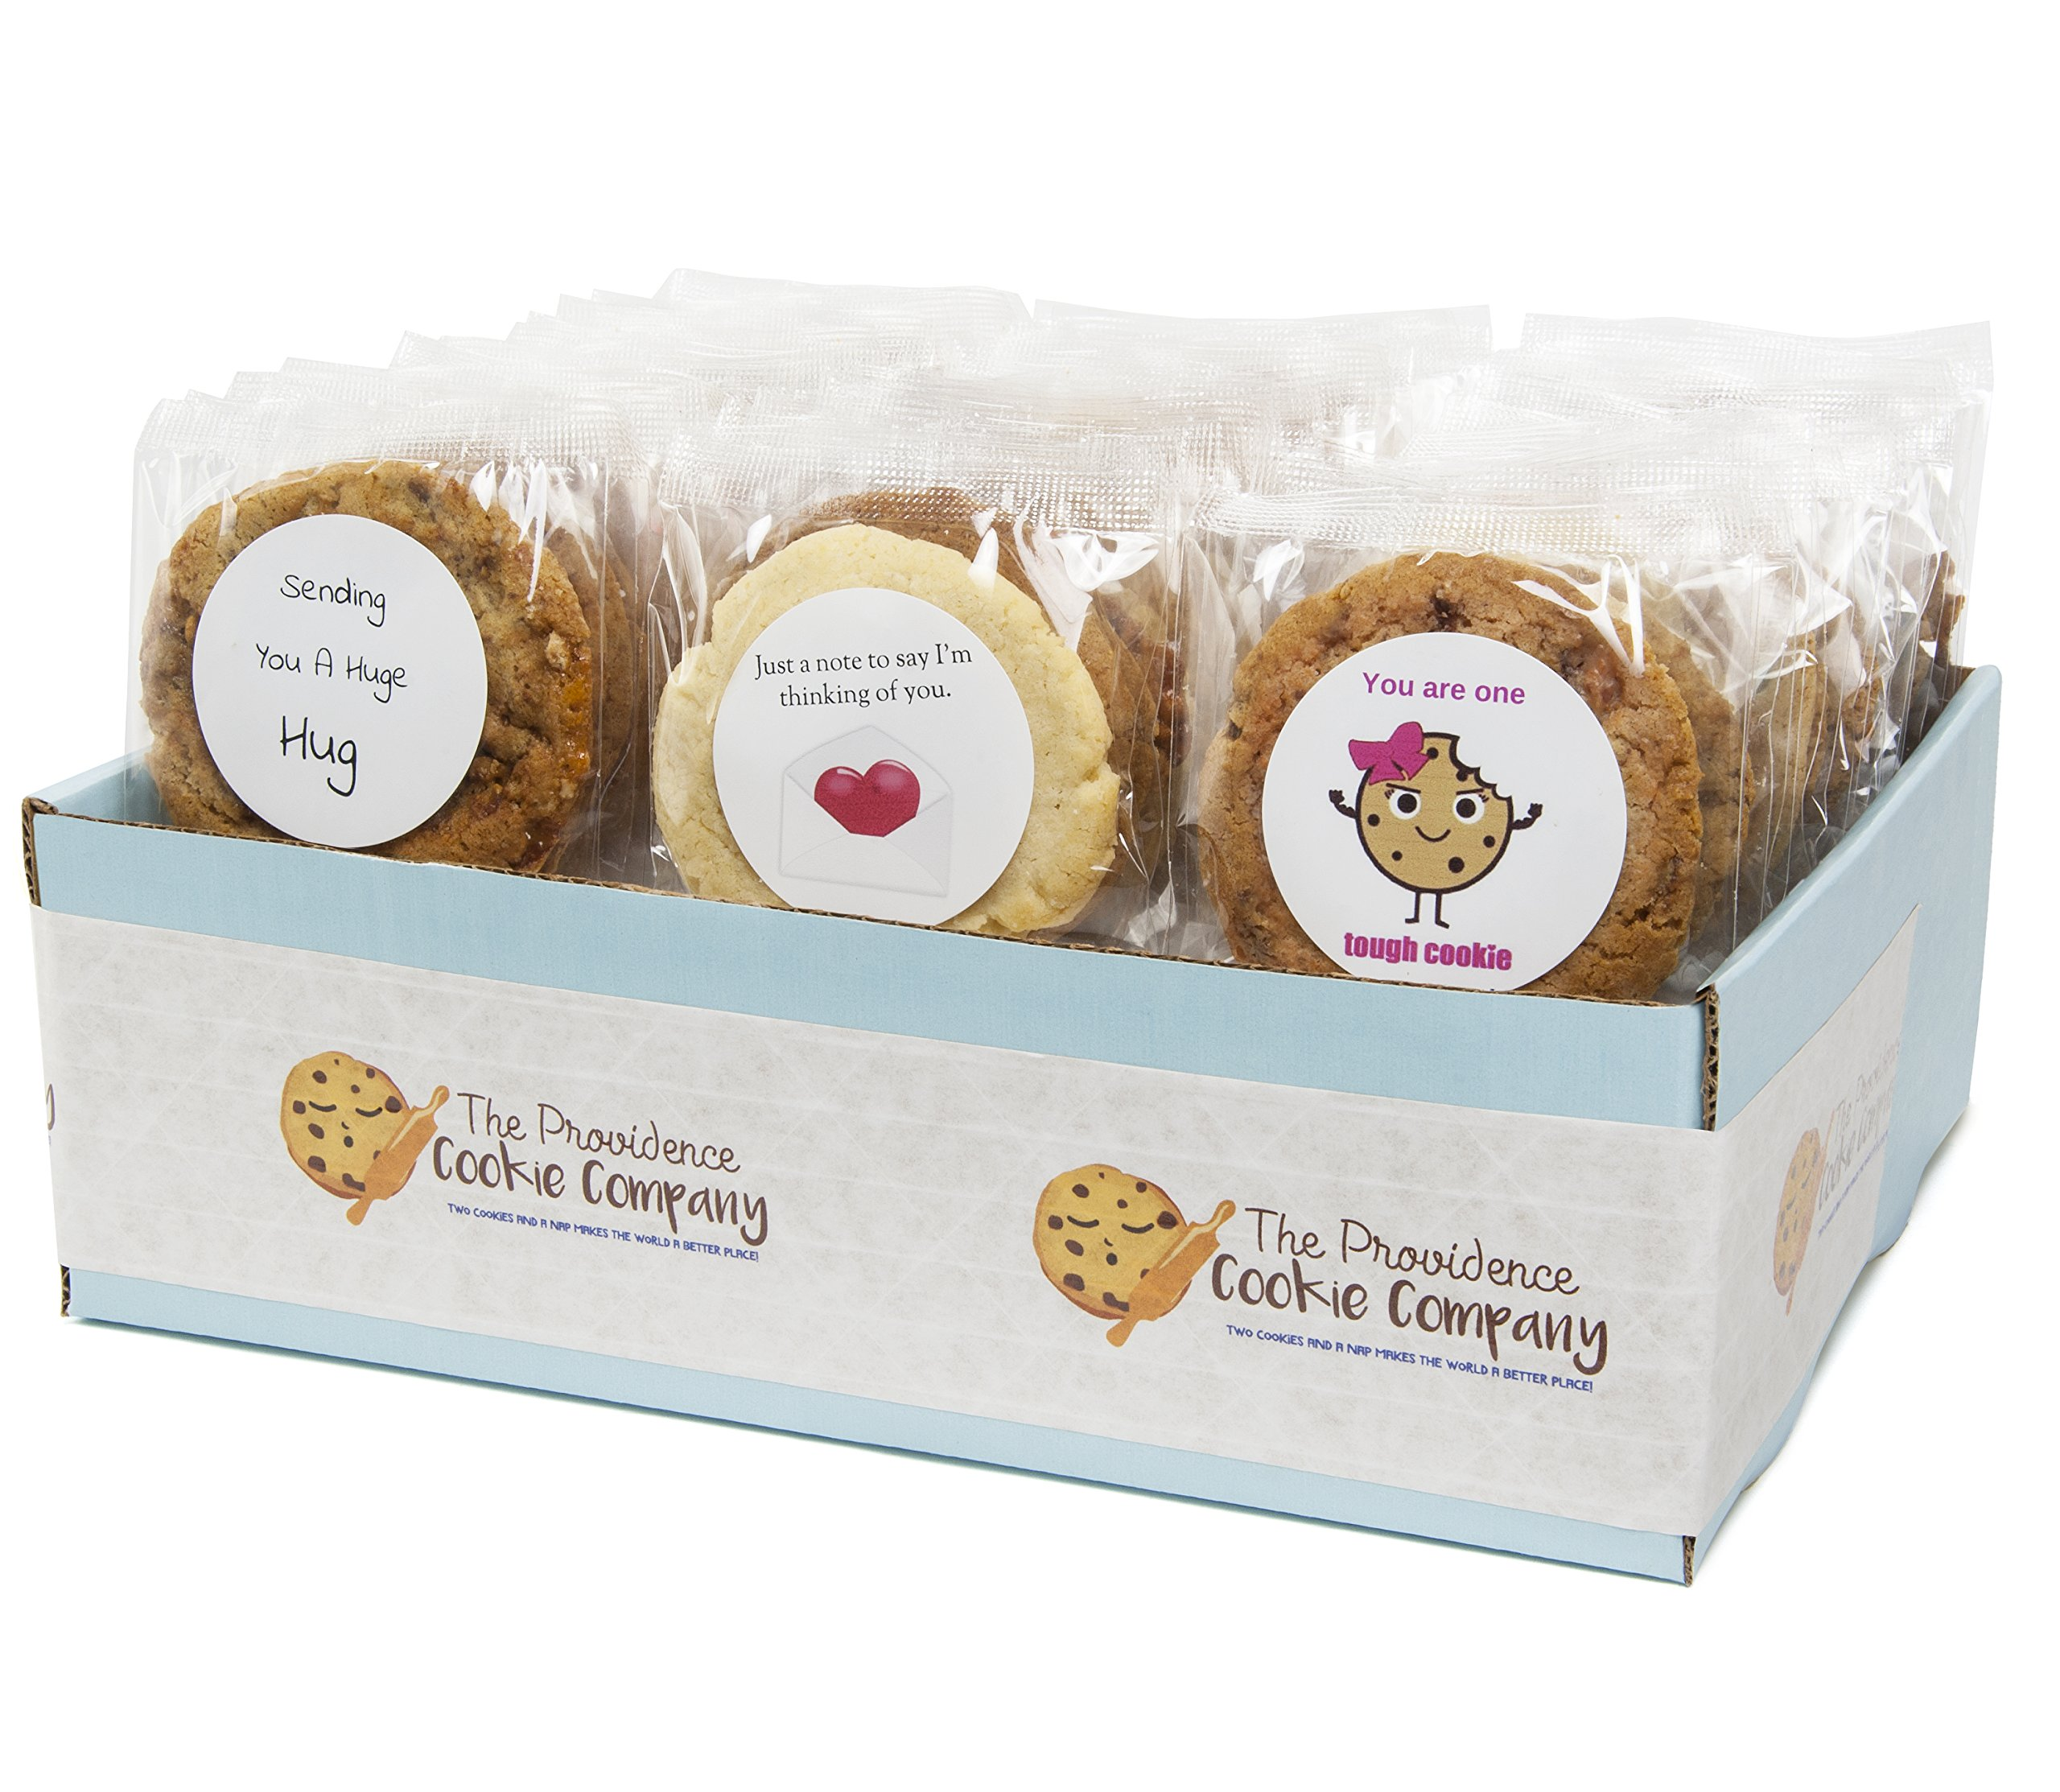 The Providence Cookie Company ENCOURAGING WISHES GOURMET COOKIE GIFT choose 1, 2, 3 or 4 Dozen (3 Dozen) by The Providence Cookie Company llc (Image #1)